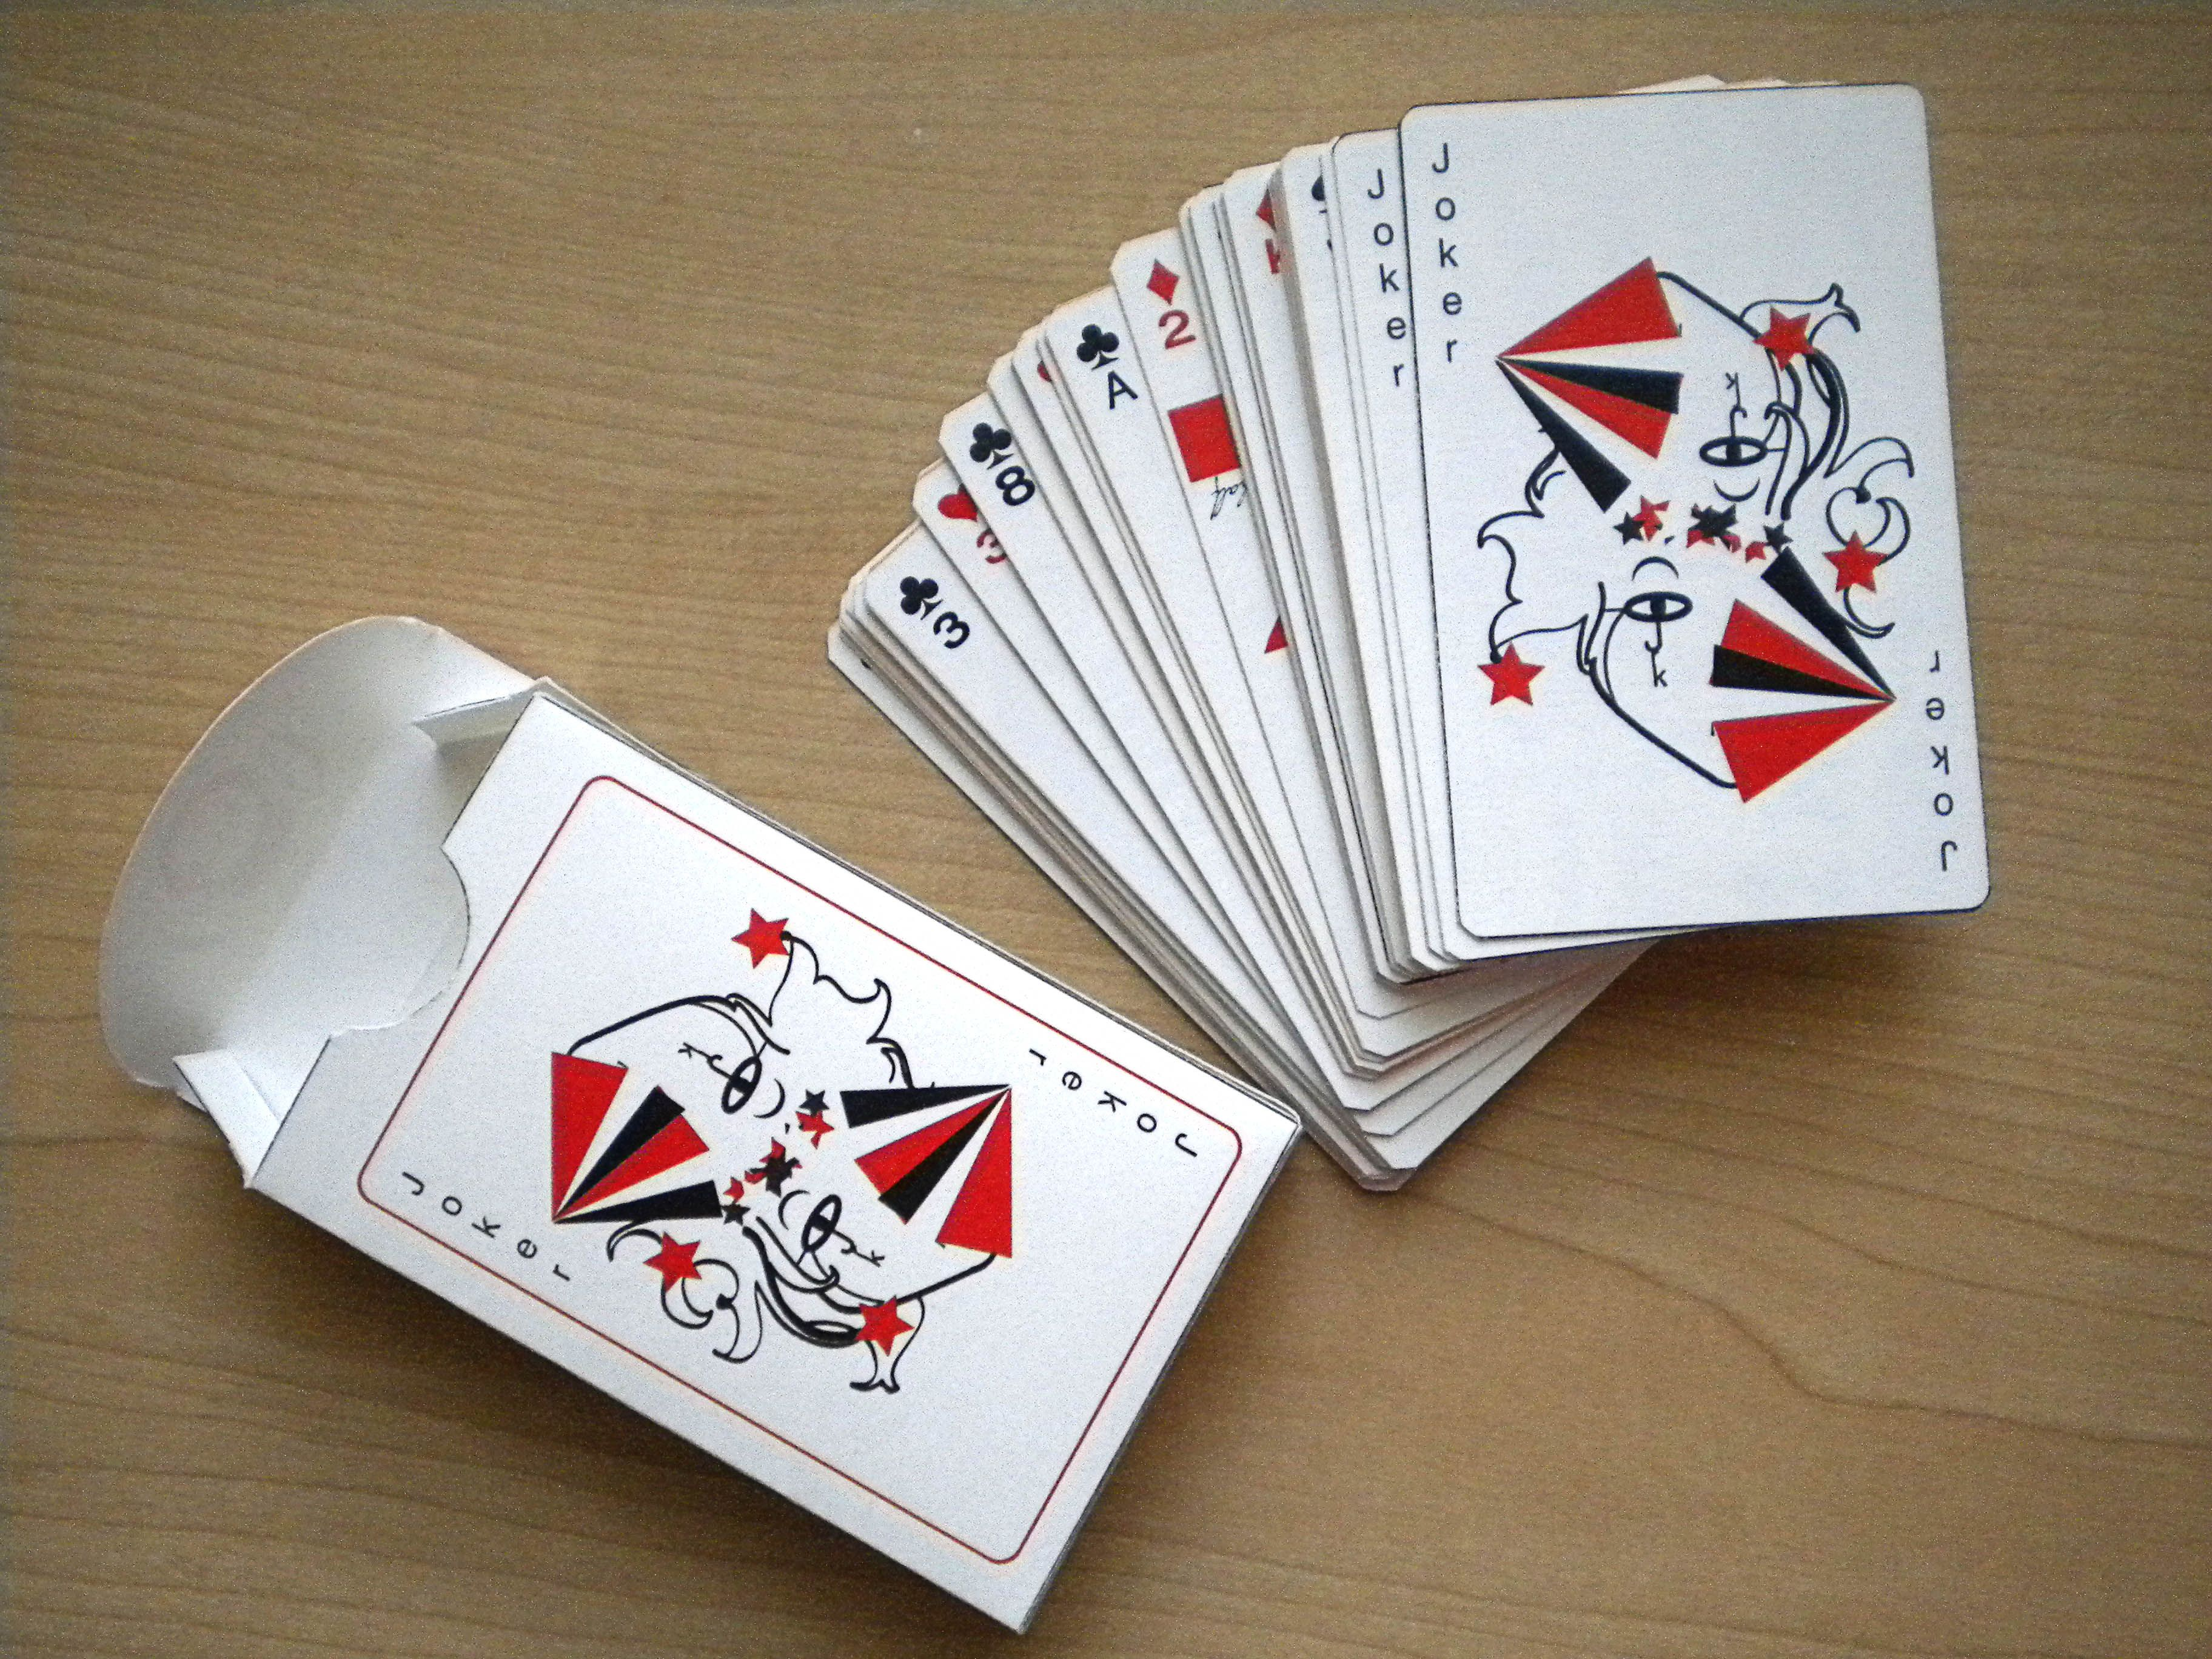 cards-and-box | Playing Cards | Pinterest | Playing cards and ...